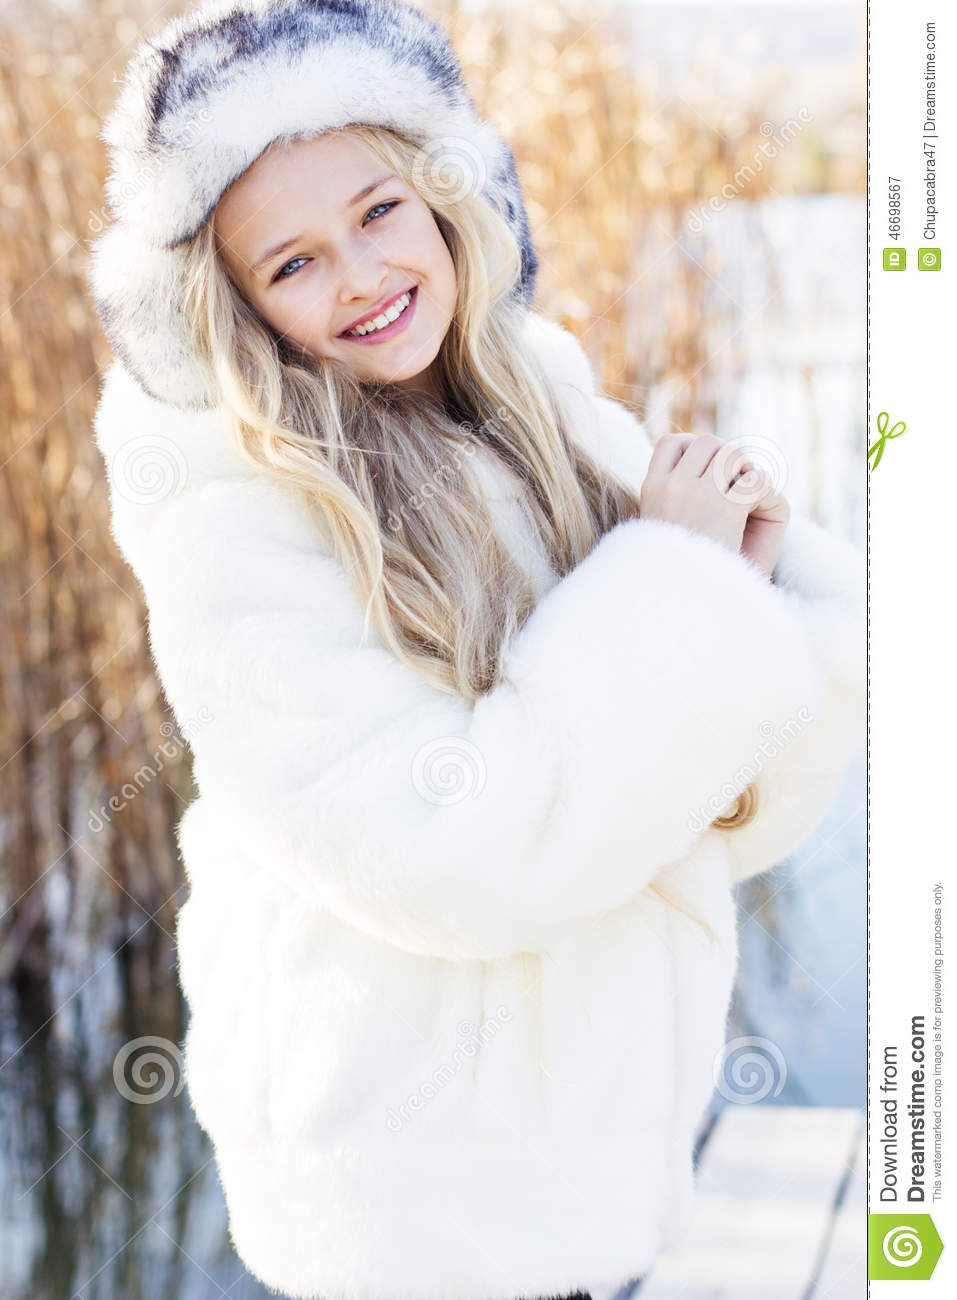 c7624d27a719 Cute Little Girl In Winter Clothes Outdoors Stock Image - Image of ...